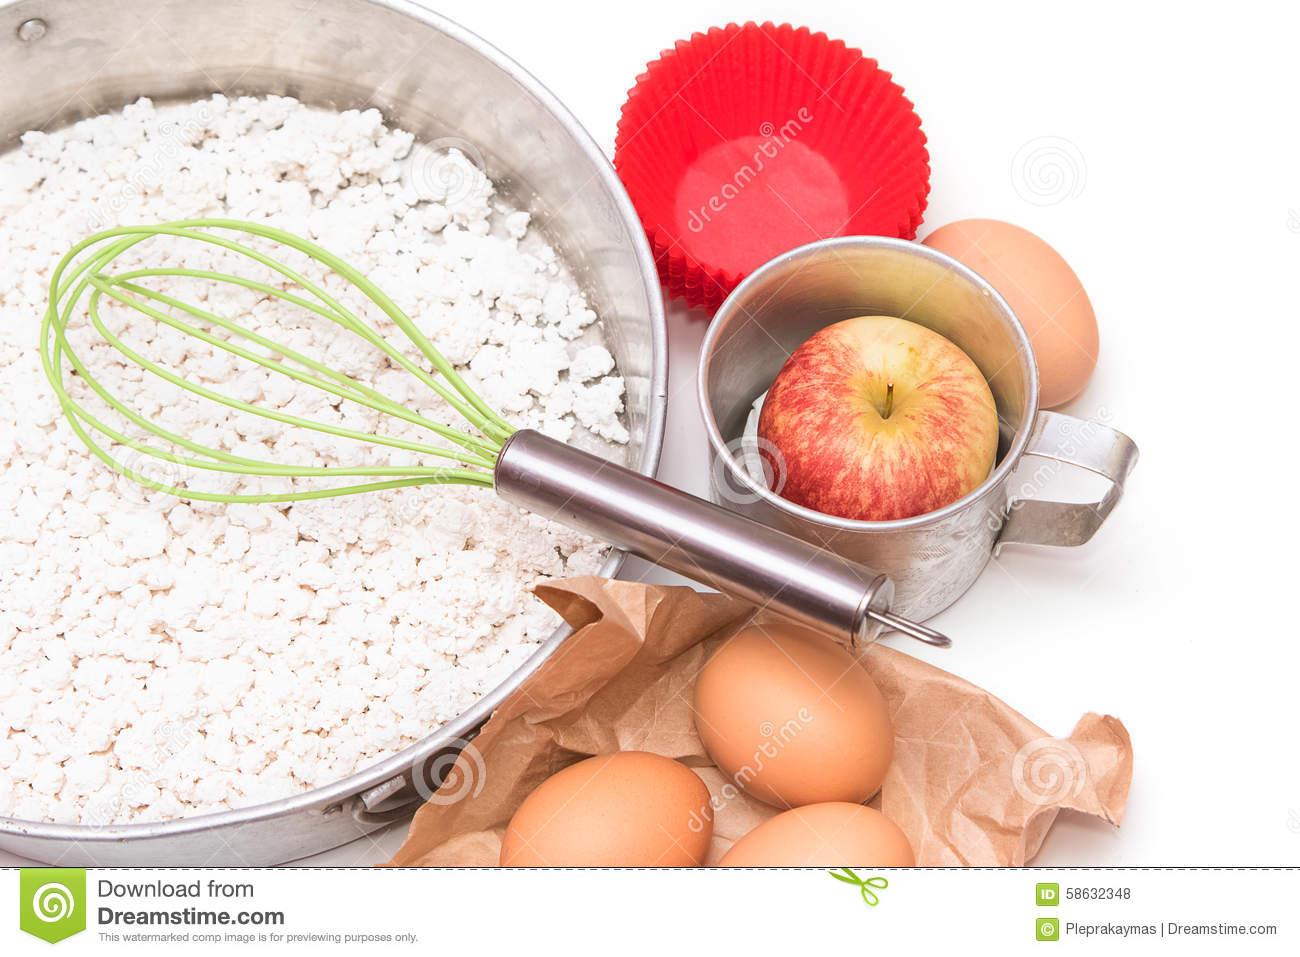 Ingredients and tools to make a cake flour apple and for What are the ingredients to make a cake